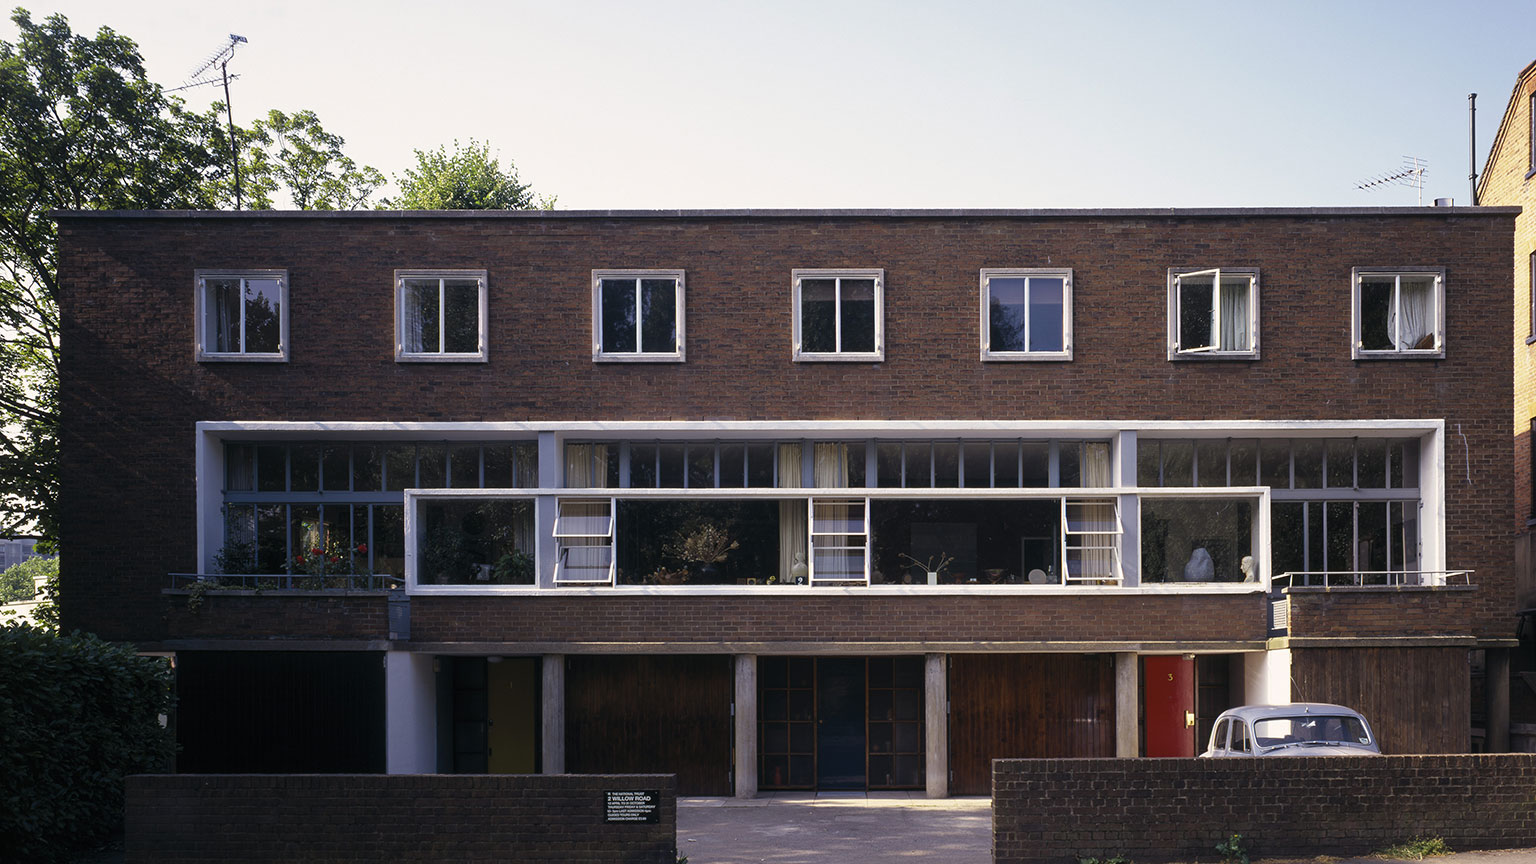 2 Willow Road, Exterior, Designed by Erno Goldfinger